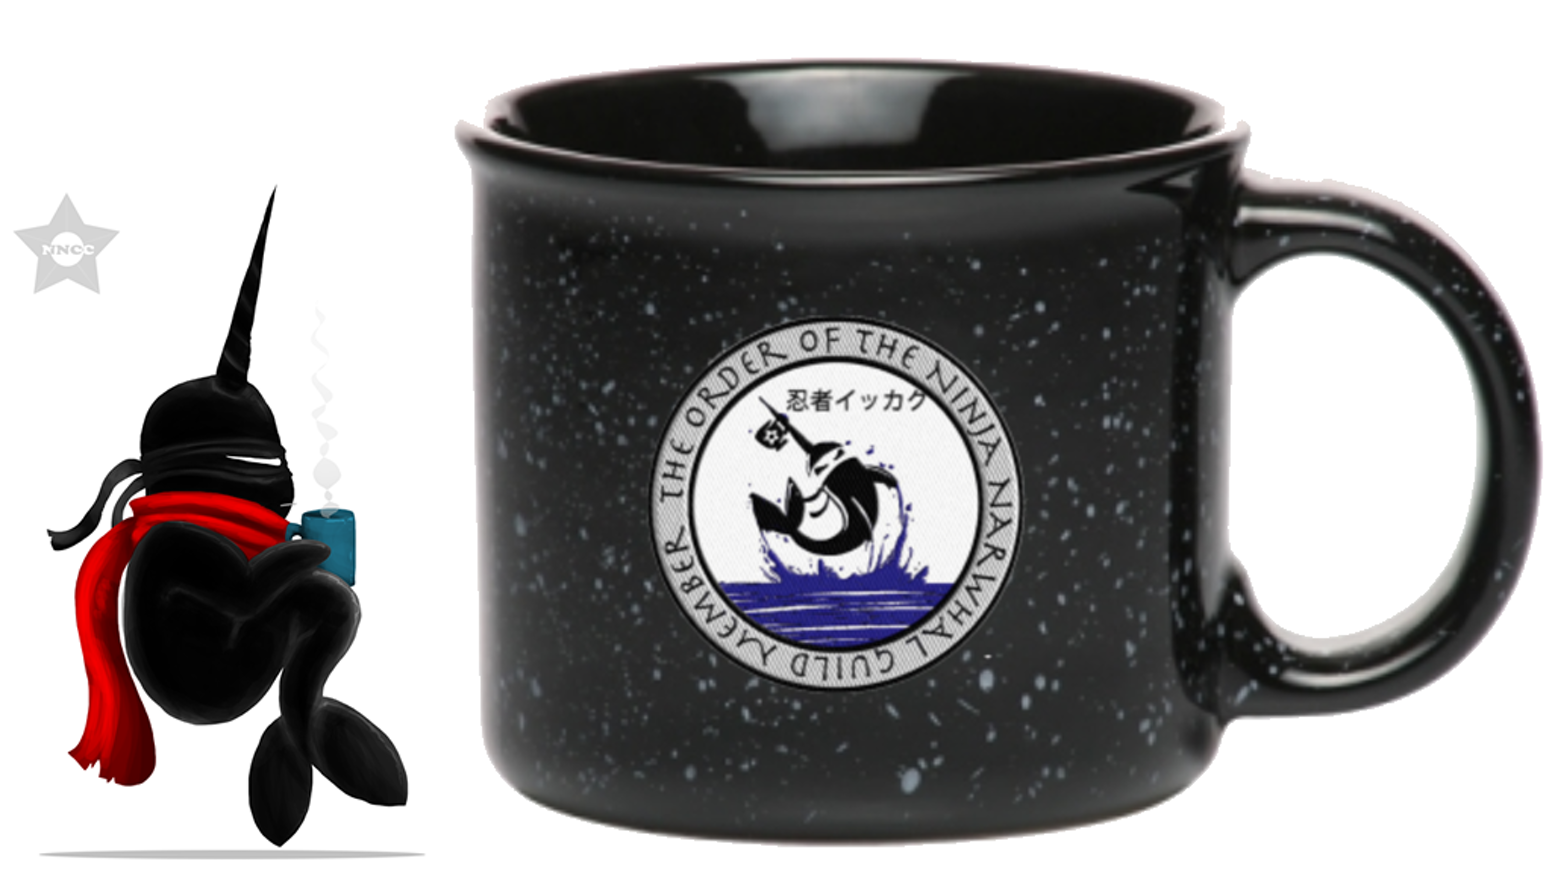 ninja narwhal coffee company 13oz campfire coffee mug by michele gutierrez kickstarter. Black Bedroom Furniture Sets. Home Design Ideas